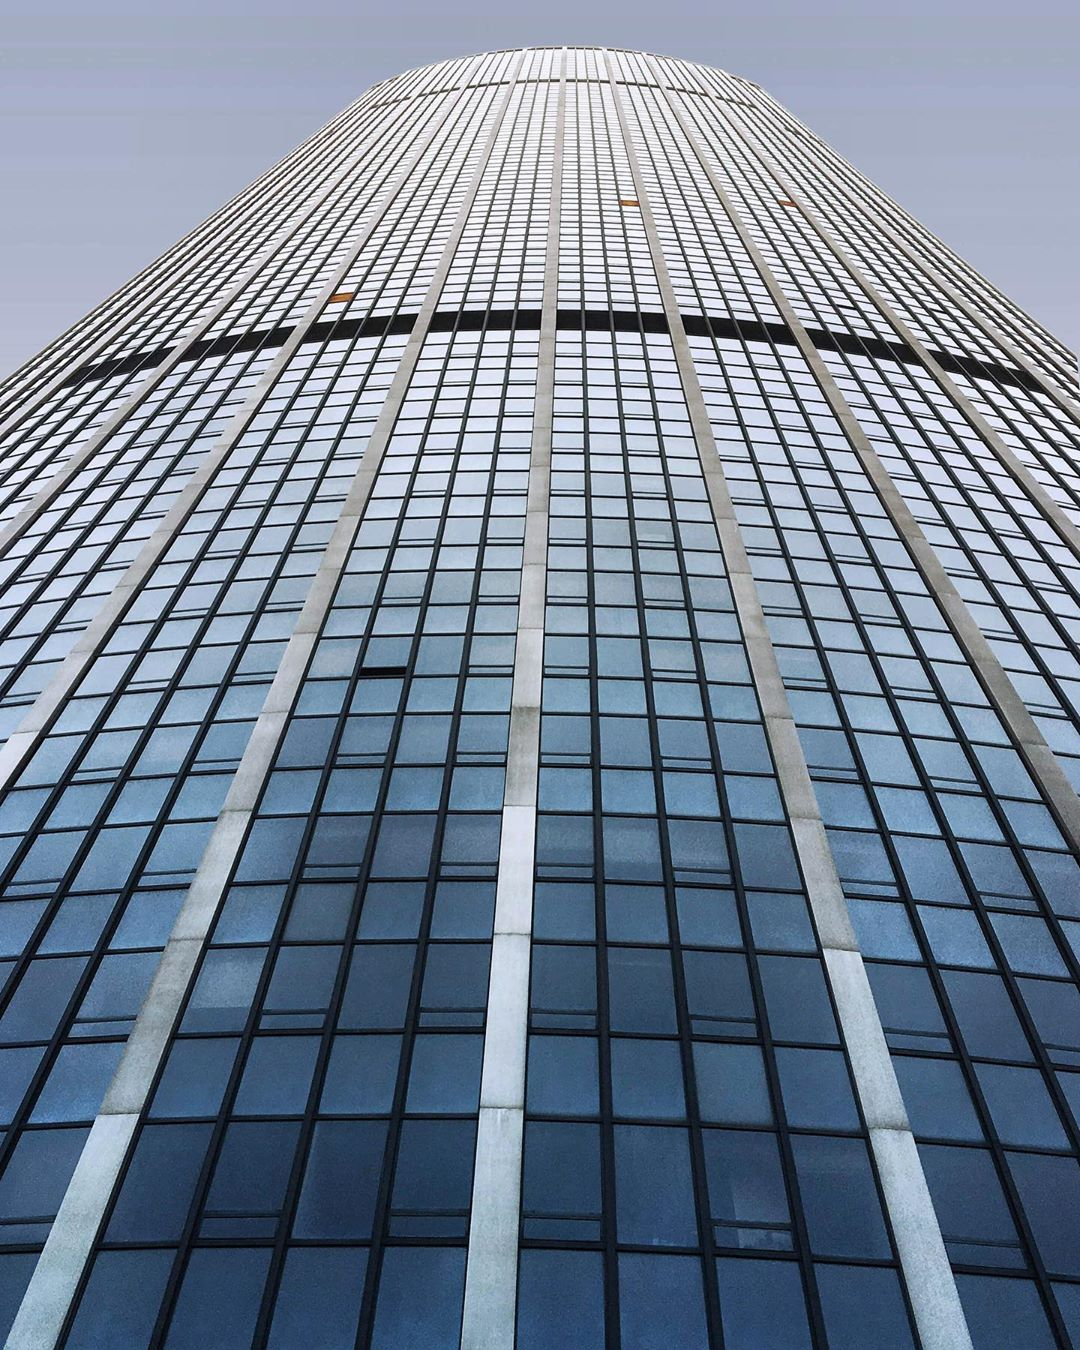 The Montparnasse tower building view from the bottom with perspective, took in Paris, France. (Nos Dren)